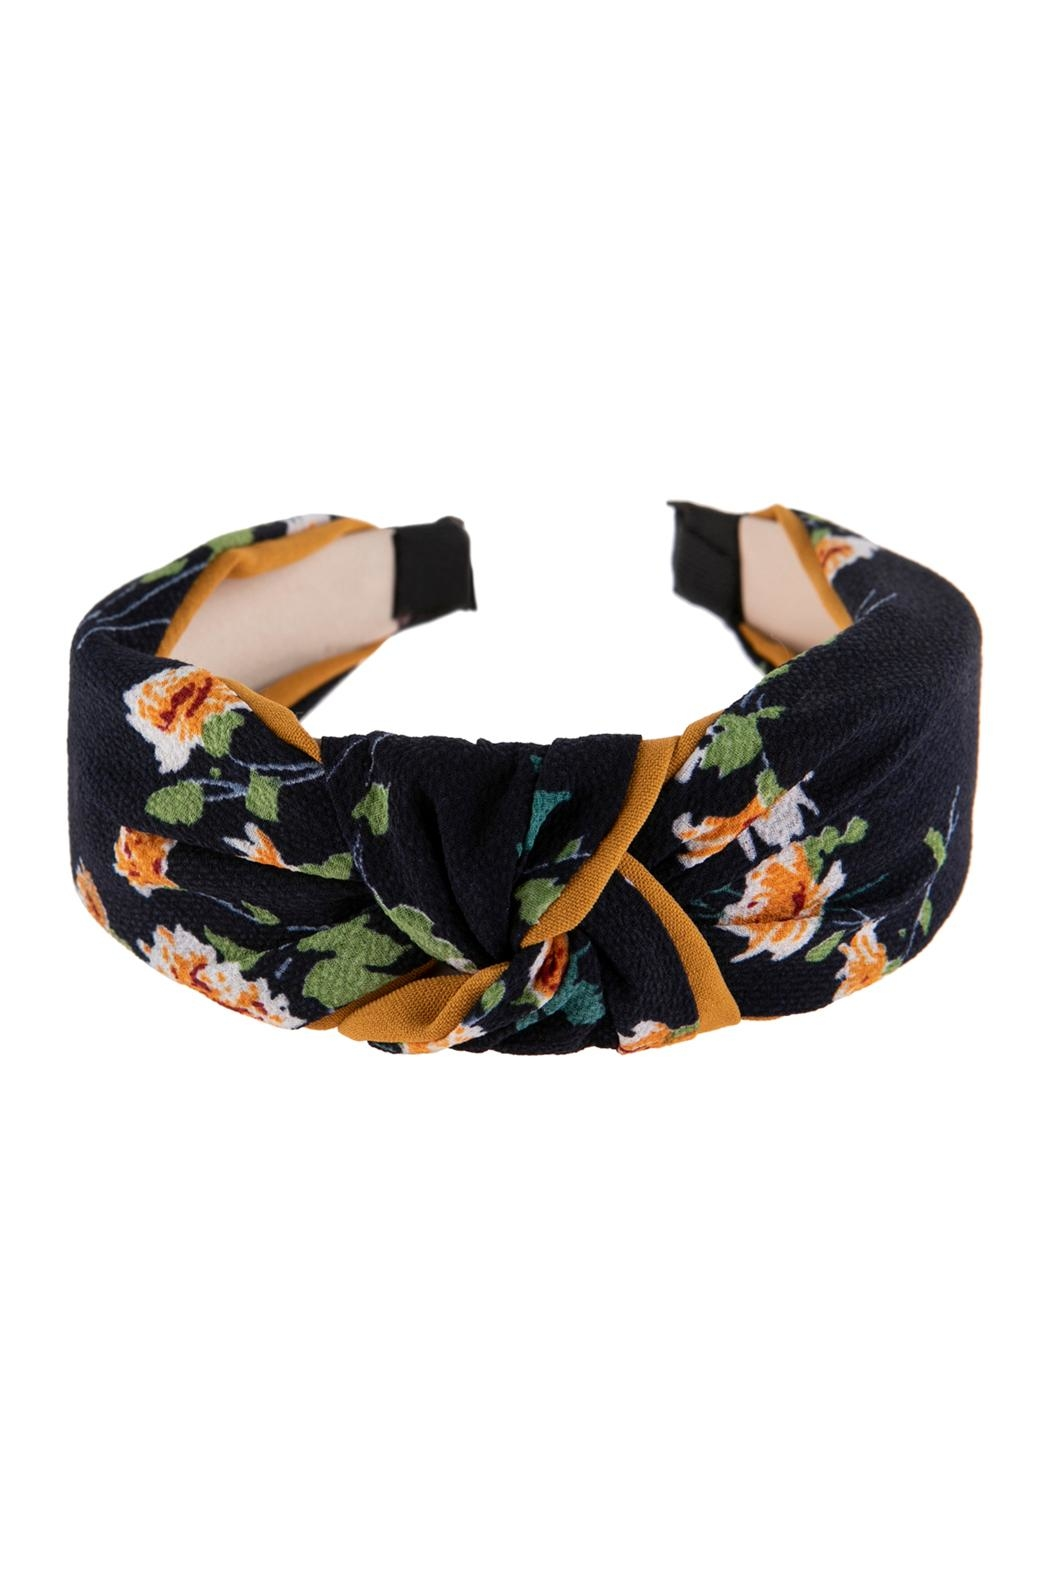 Riah Fashion Floral Printed-Knotted-Fabric-Headband - Front Cropped Image